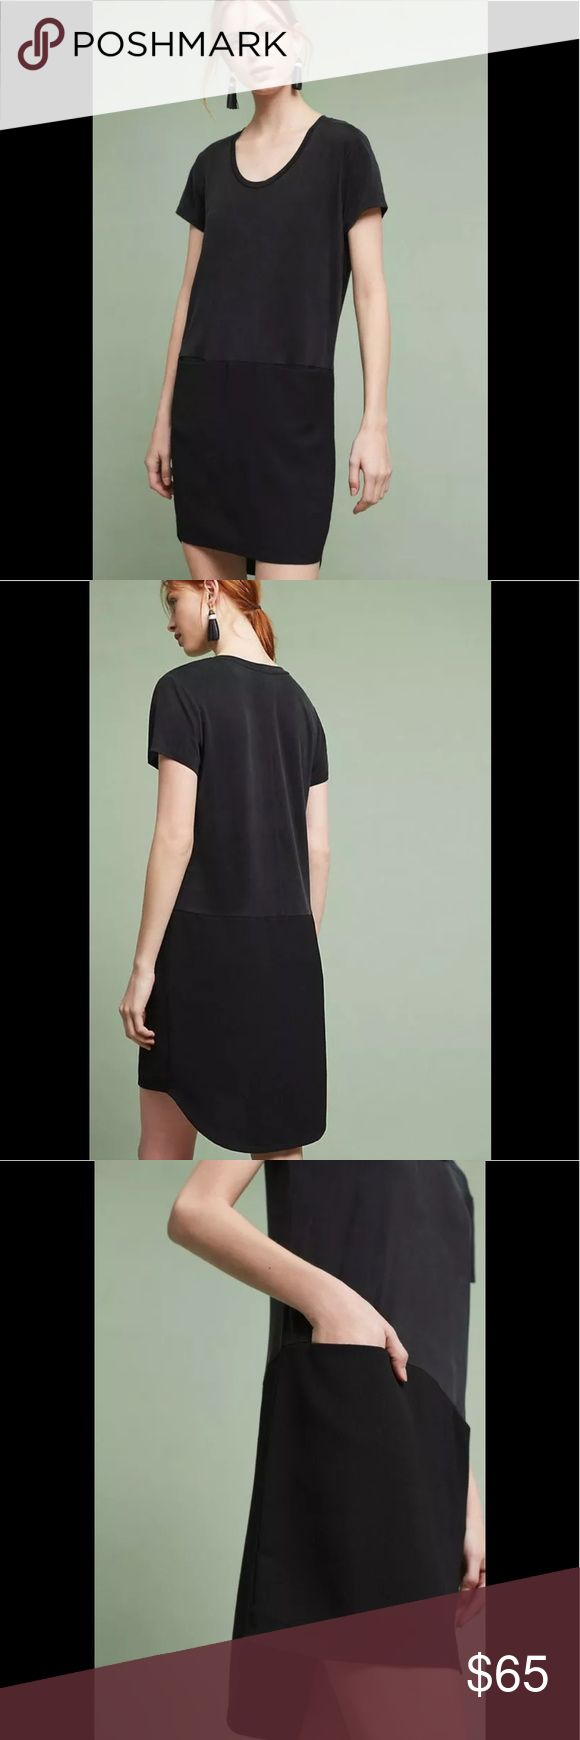 """NEW Anthropologie Loren Tunic Dress Dolan Left Anthropologie Loren Tunic Dress By Dolan Left Coast 🌻Brand New Condition without tags. Dolan is the eponymous label of designer Jodie Dolan. Imbued with the laidback, effortlessly sexy vibe of her Los Angeles home base, Dolan's clothes are simple, original and confident. Cupro, spandex; polyester lining, Side pockets, pullover styling Machine wash Style No. 4130212061657 » Measured Flat; Bust: 21"""" Hips: 21""""  Falls 37.5"""" from shoulder in front…"""